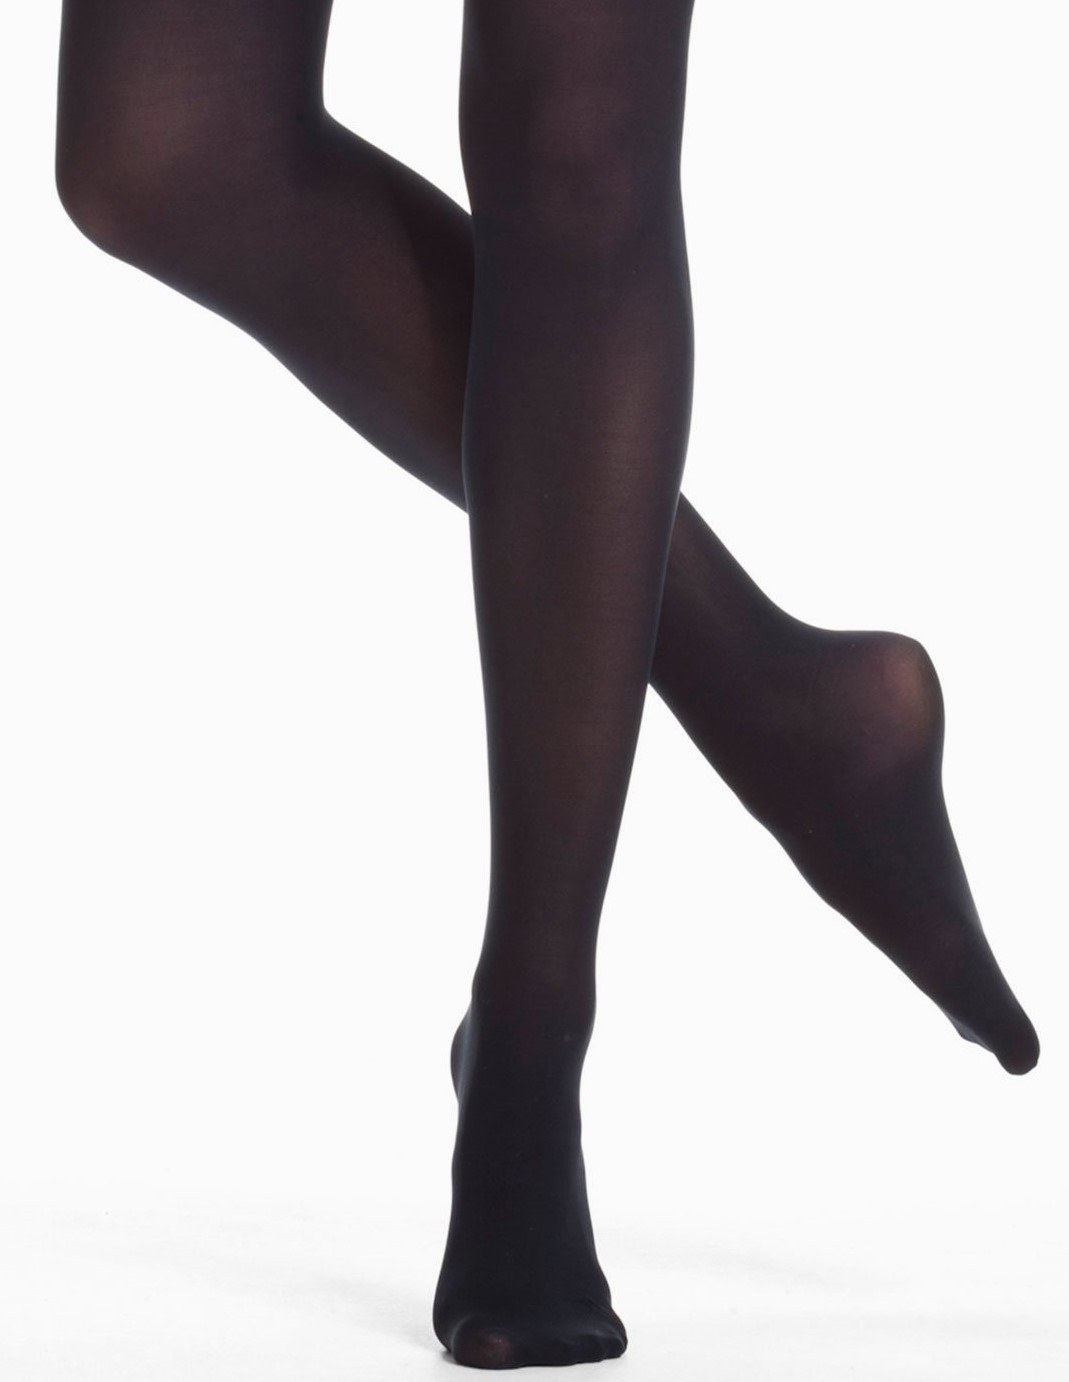 Danskin Support Outsize Tights with Feet